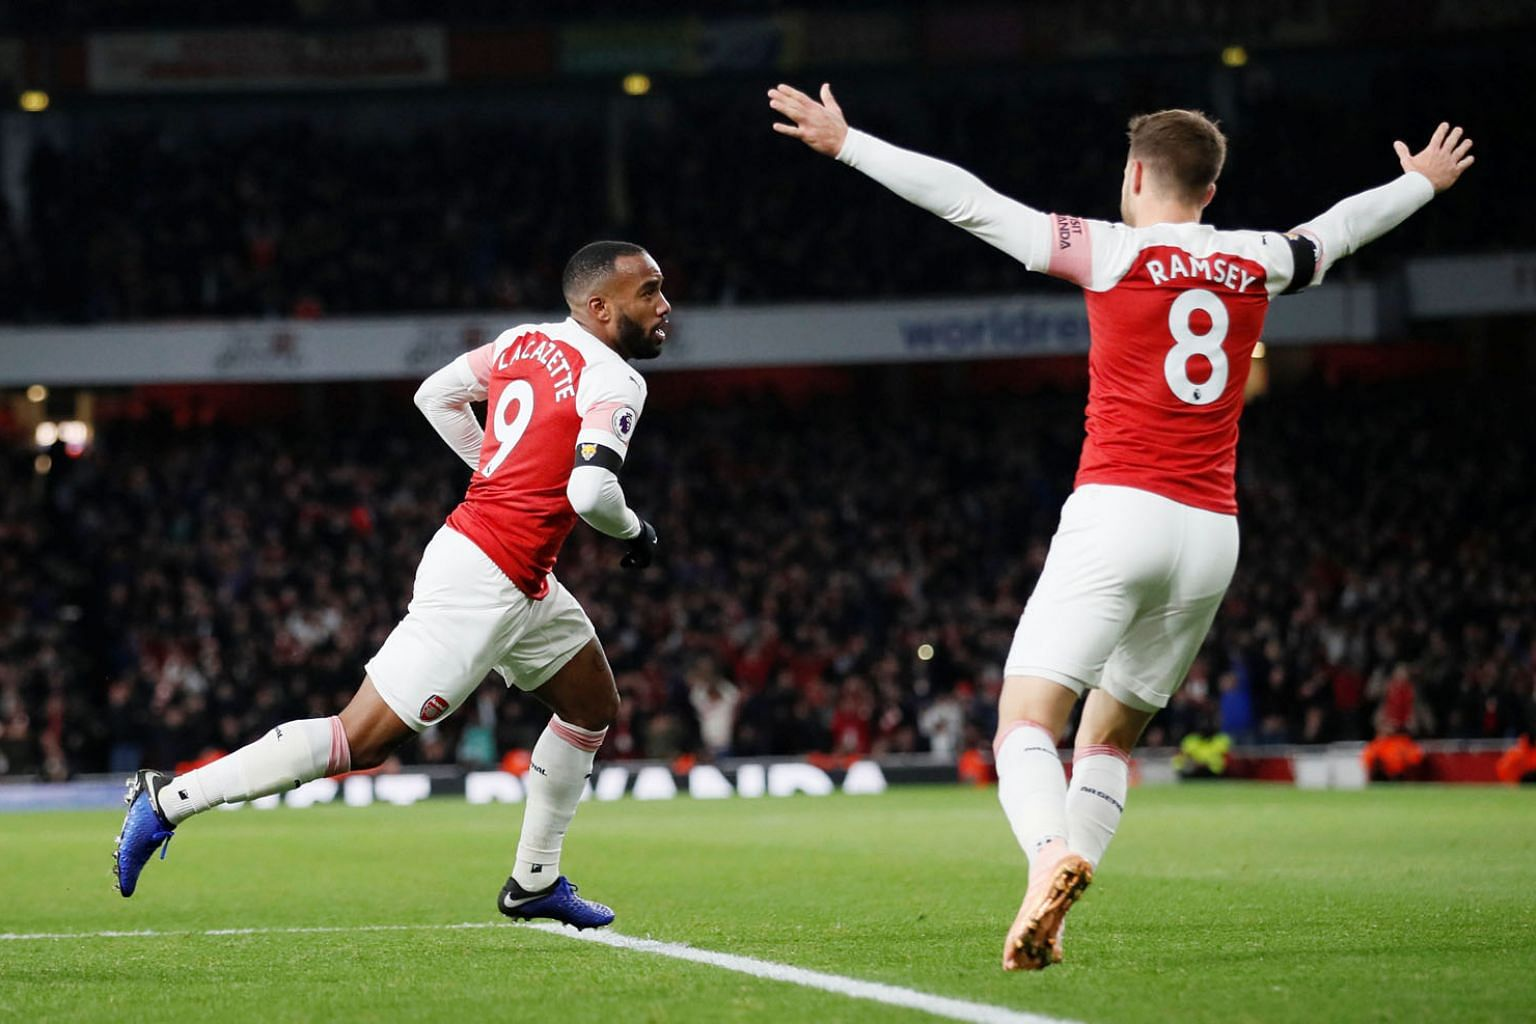 Arsenal forward Alexandre Lacazette celebrates with teammate Aaron Ramsey after scoring the equaliser in the 1-1 draw with Liverpool at the Emirates Stadium on Saturday. Goalkeeper Bernd Leno said the result proved the Gunners can hold their own agai